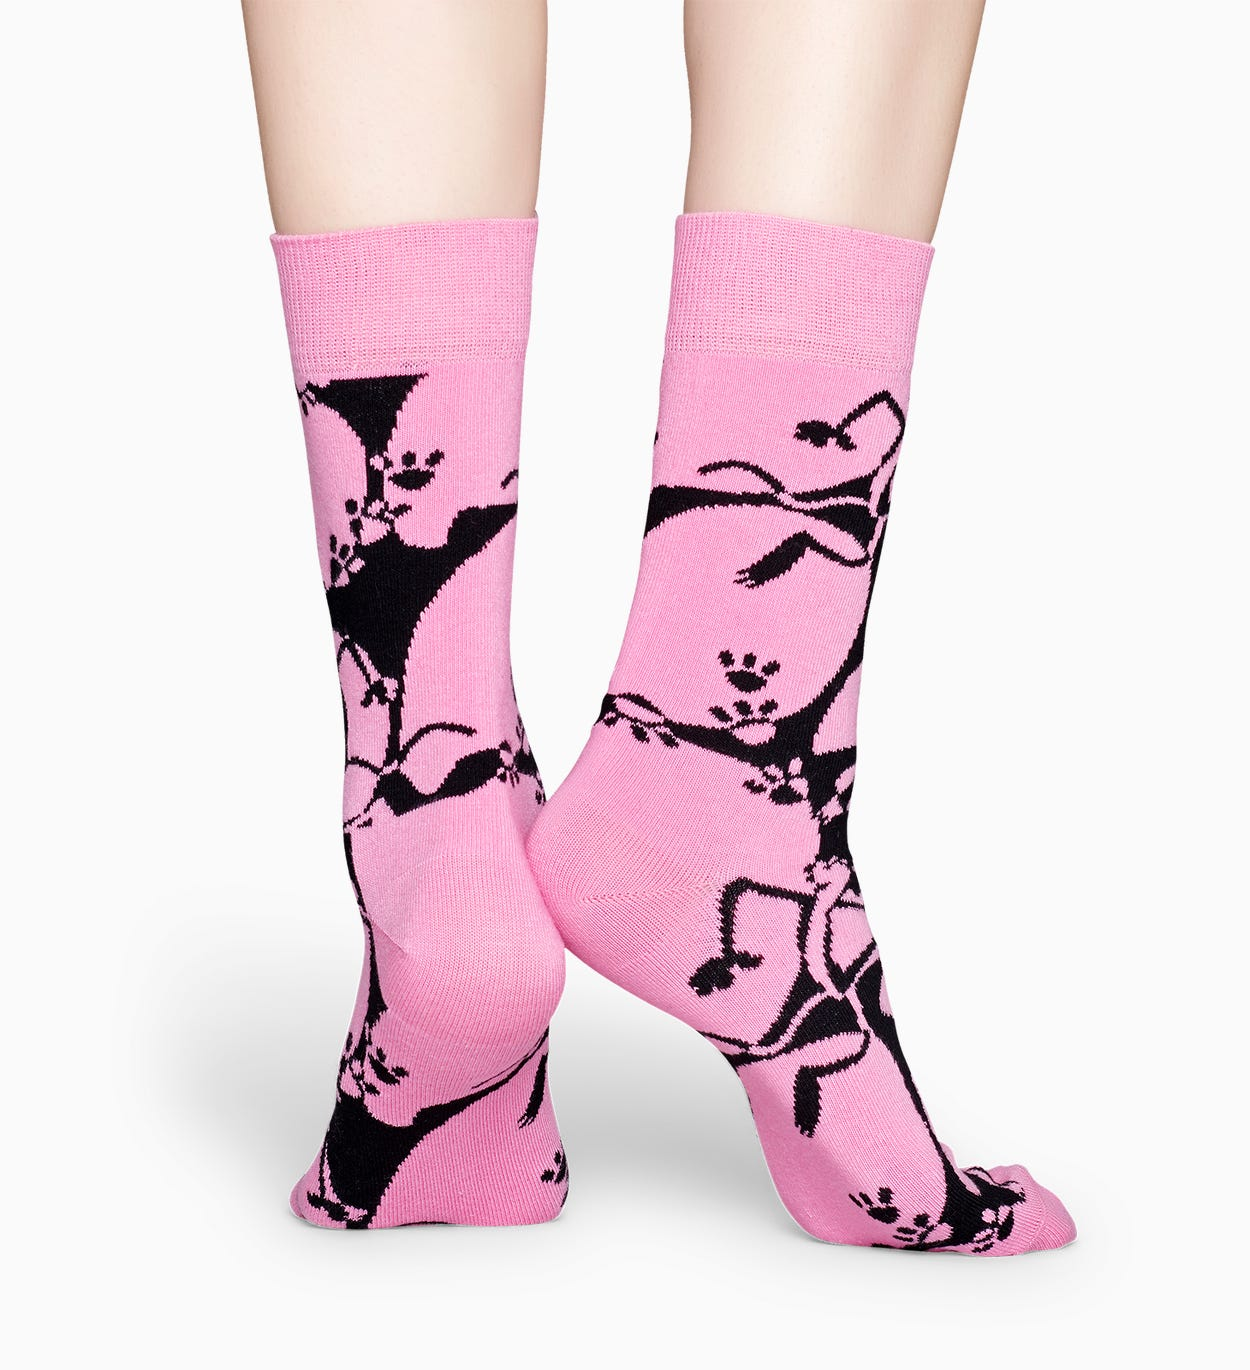 Happy Socks x Pink Panther: Pink-A-Boo Sok